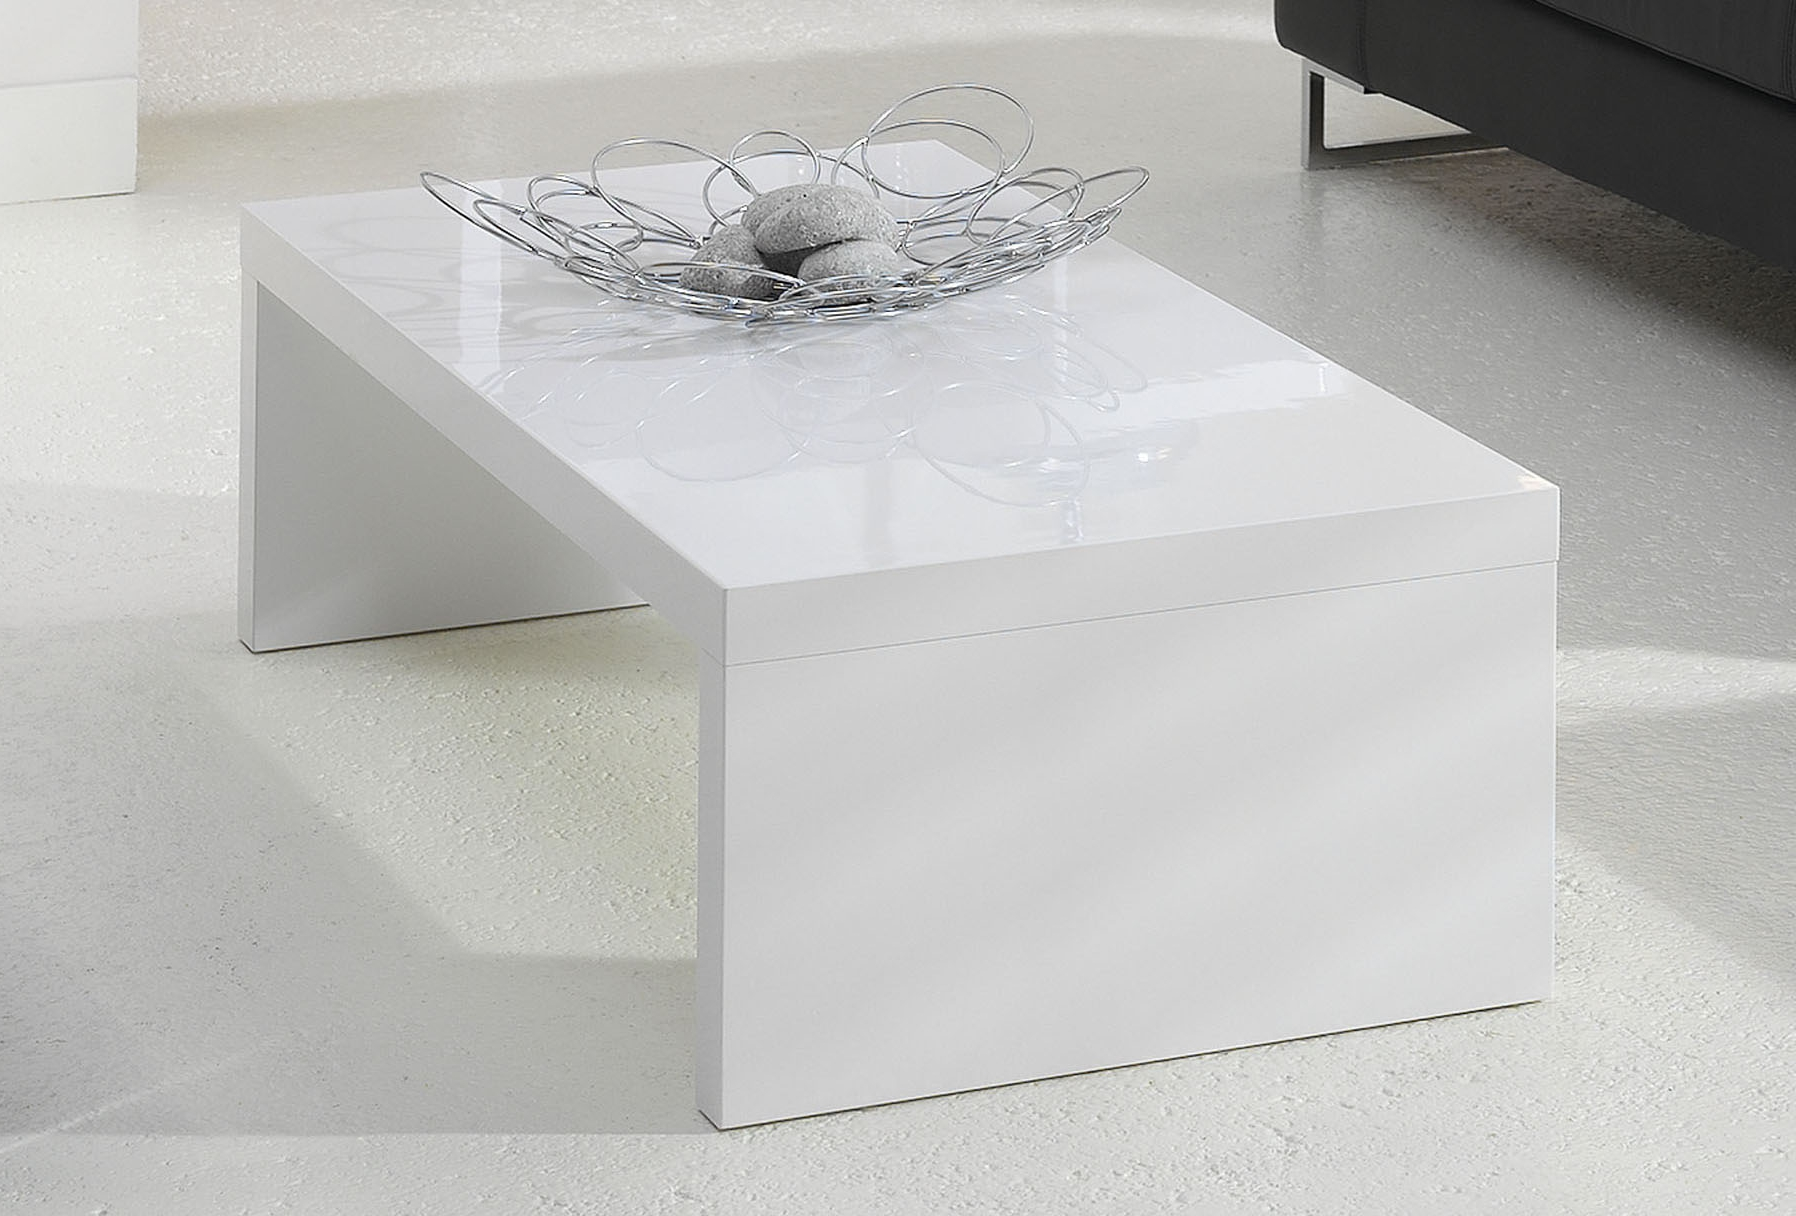 Table basse blanc laqu rectangulaire images - Table basse laquee blanc ...